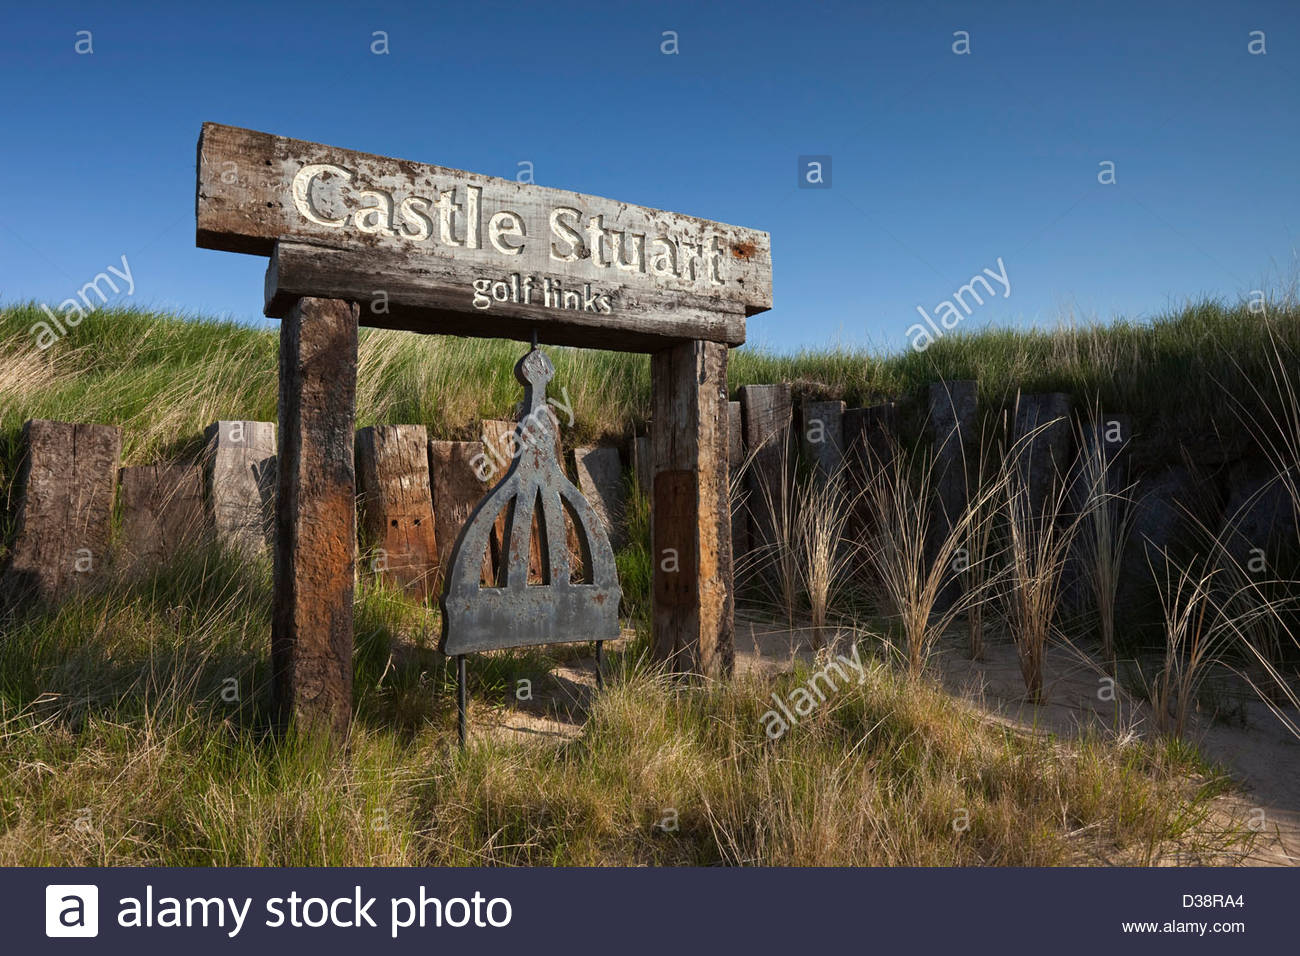 Castle Stuart Golf Links, situated between Inverness and Nairn, on Scotland's Moray Firth coast. - Stock Image